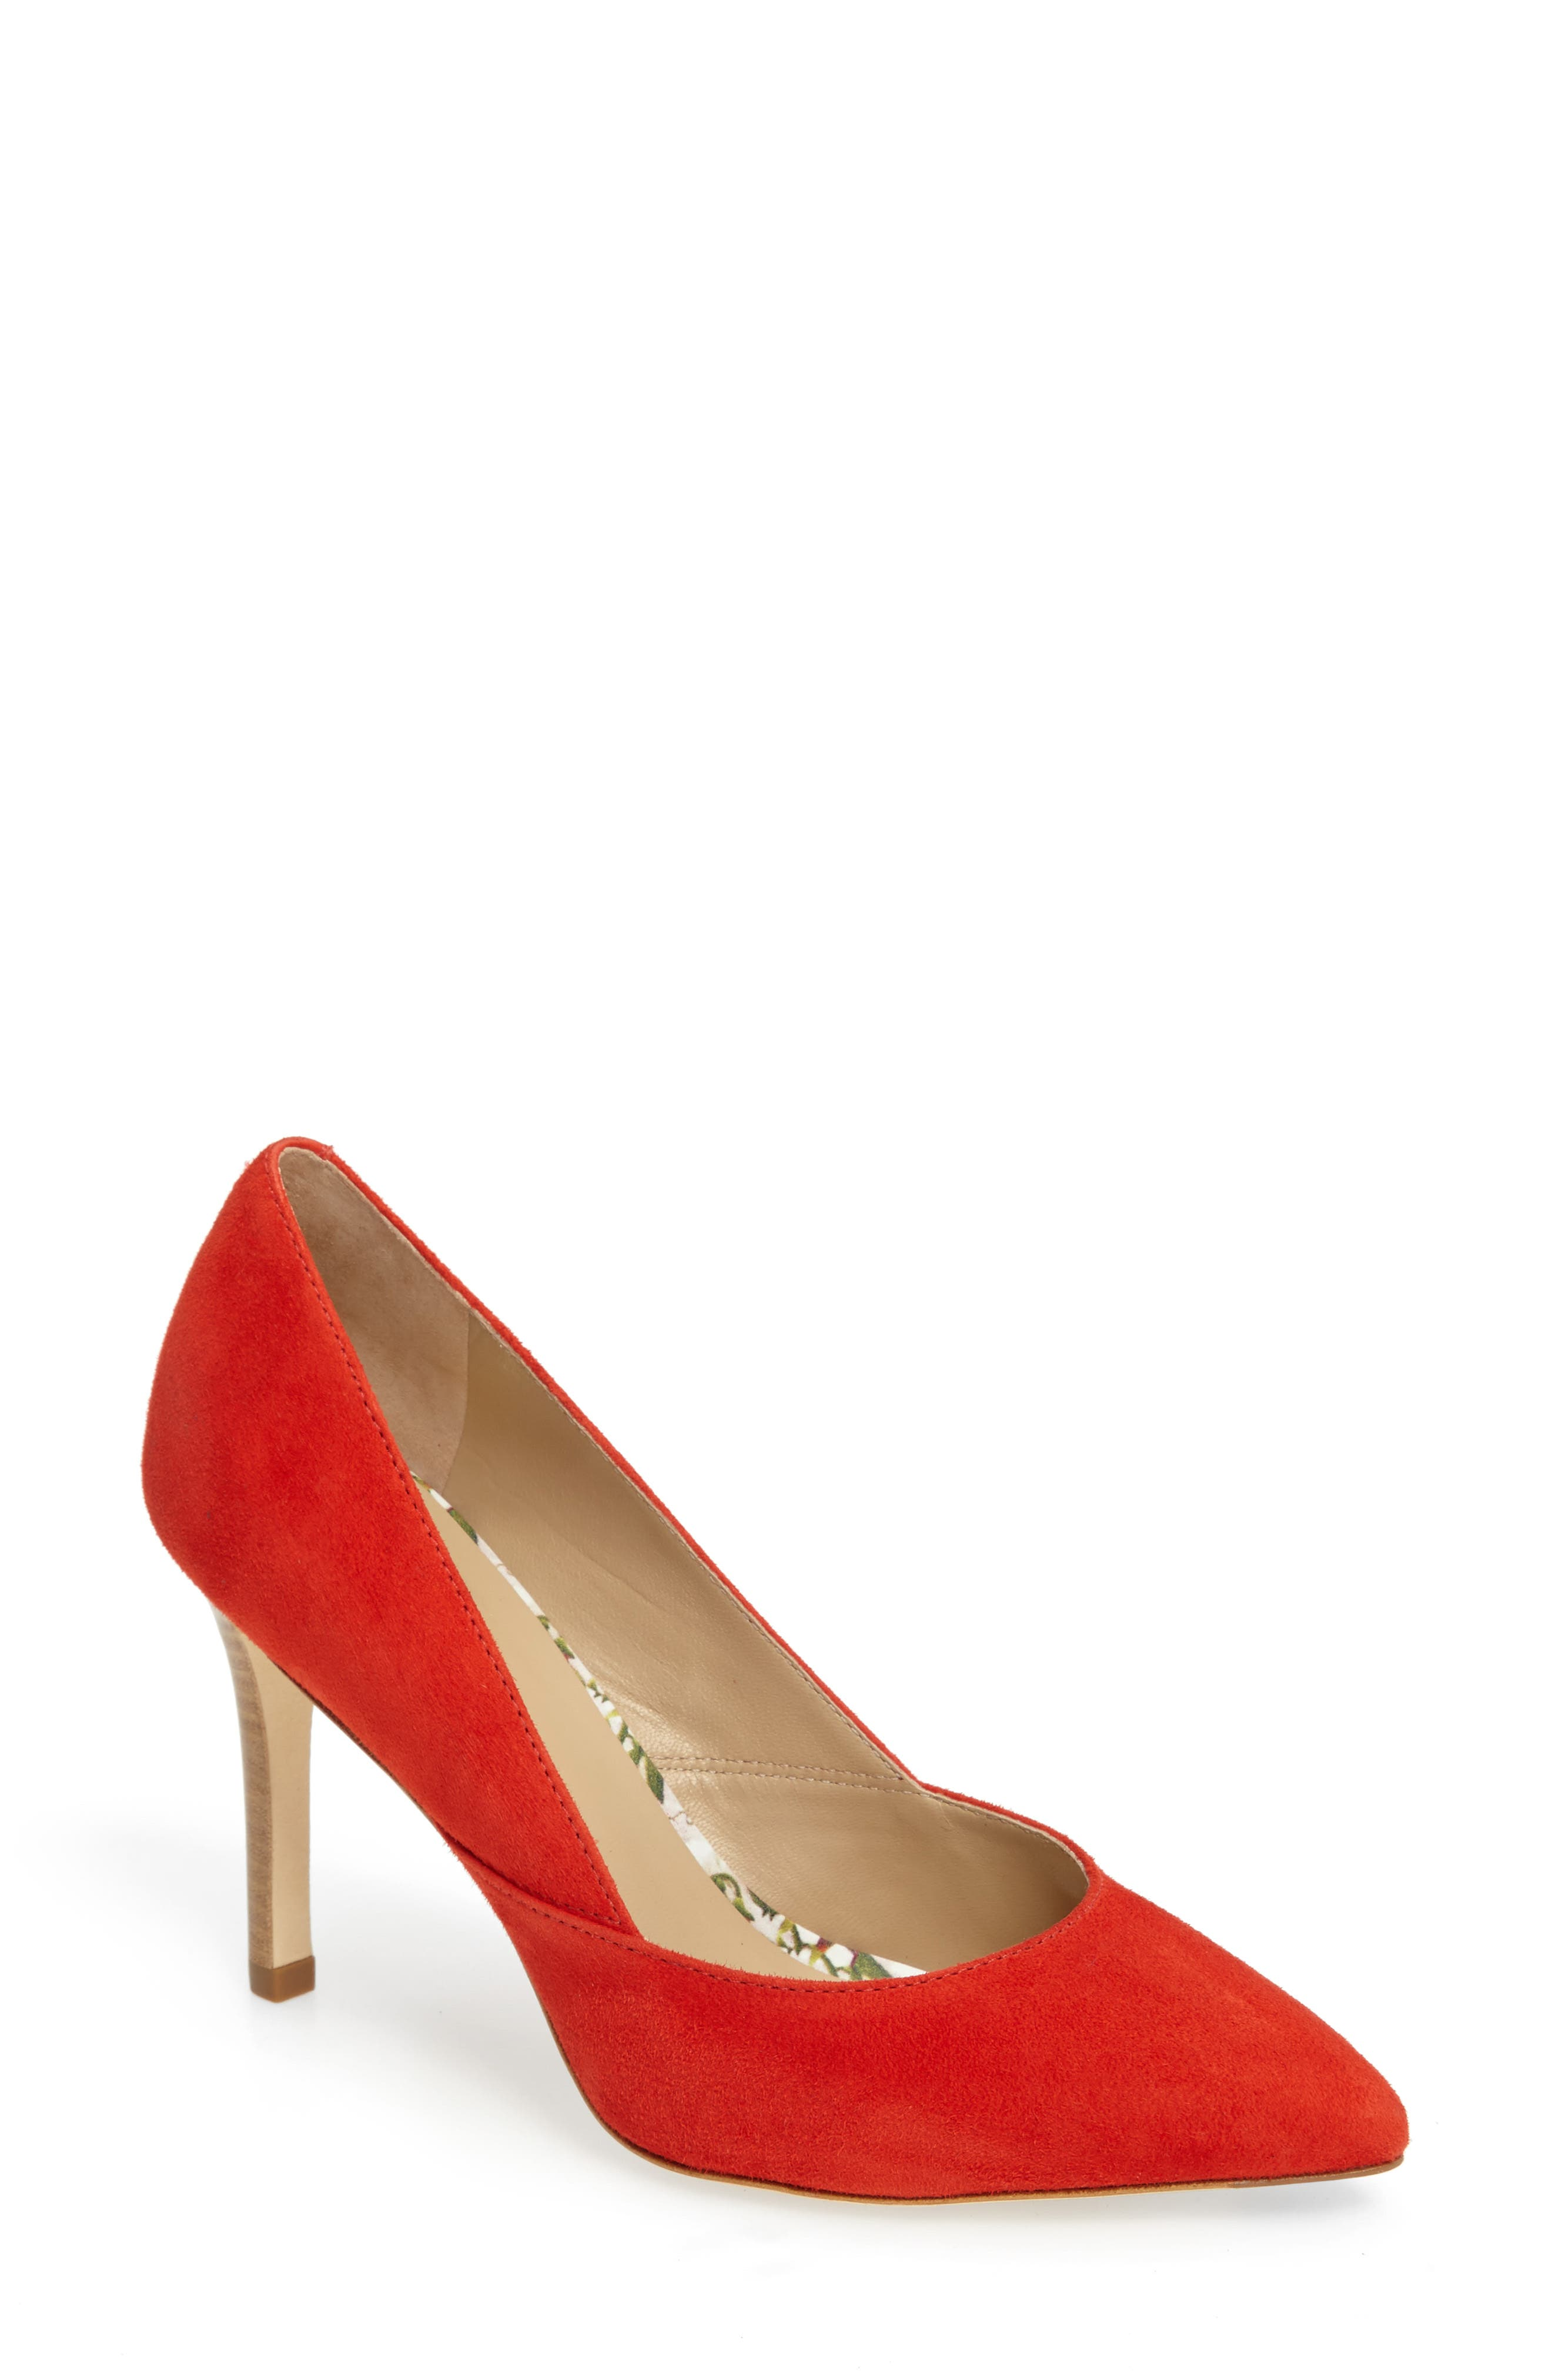 'Vanessa' Pointy Toe Leather Pump,                             Main thumbnail 8, color,